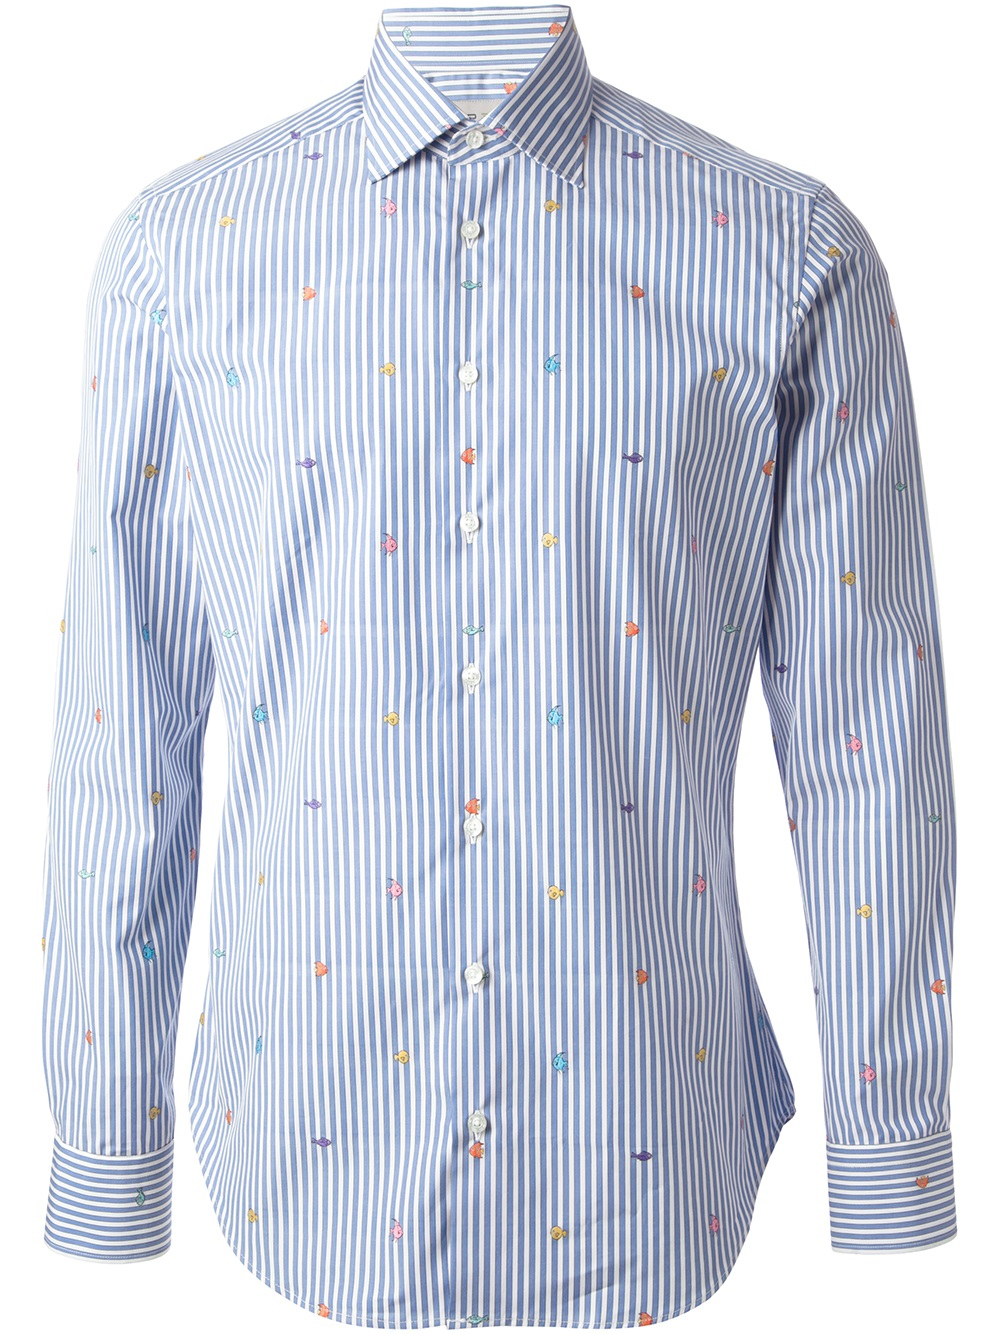 Etro striped fish print shirt in blue for men lyst for Fish print shirt